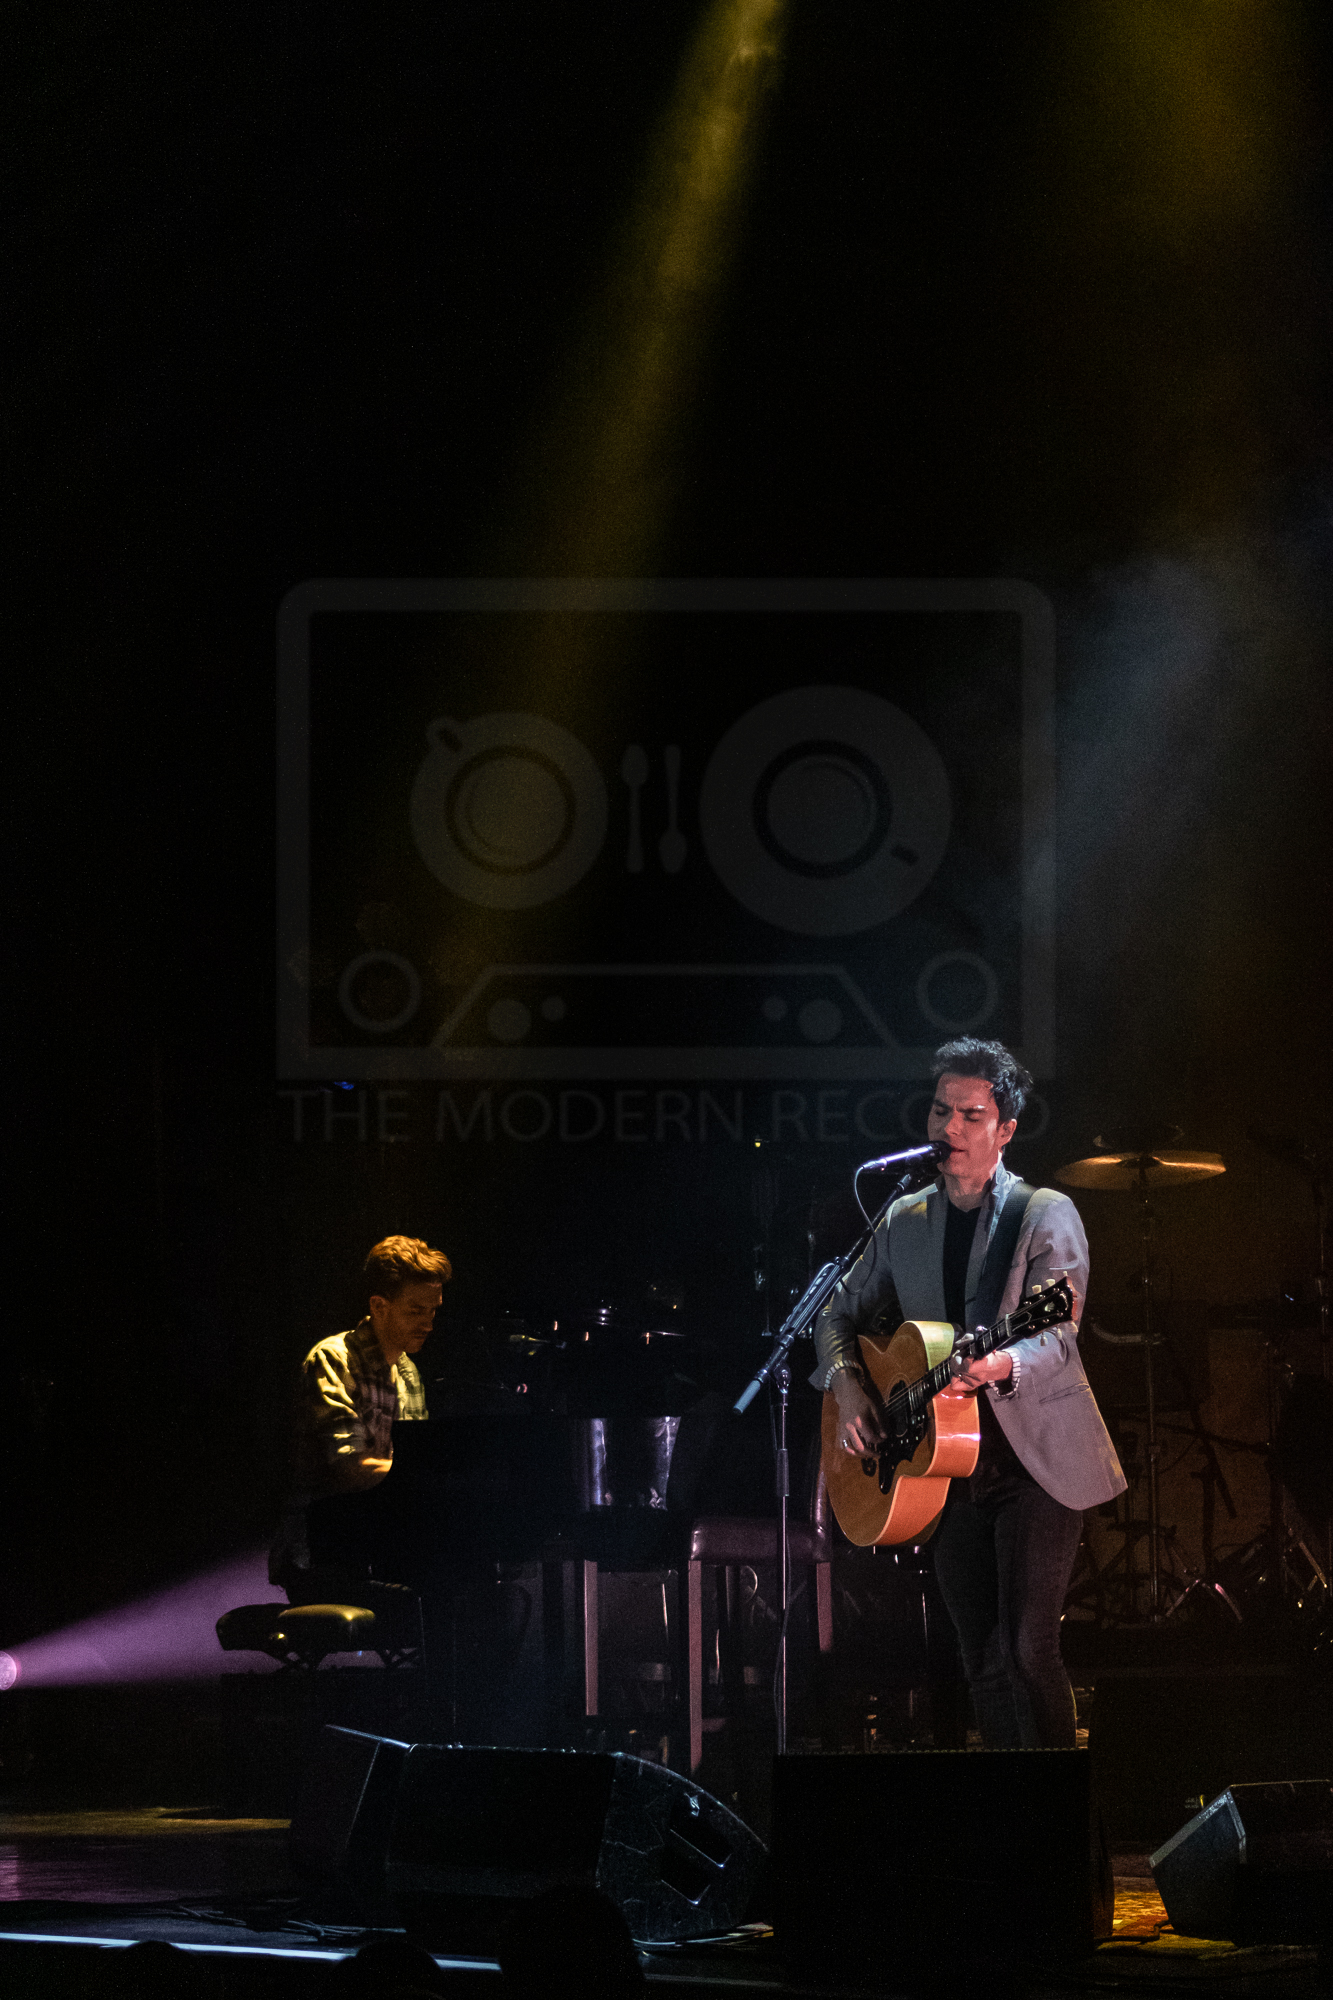 Kelly Jones - Glasgow Royal Concert Hall - 02-06-19-16.jpg